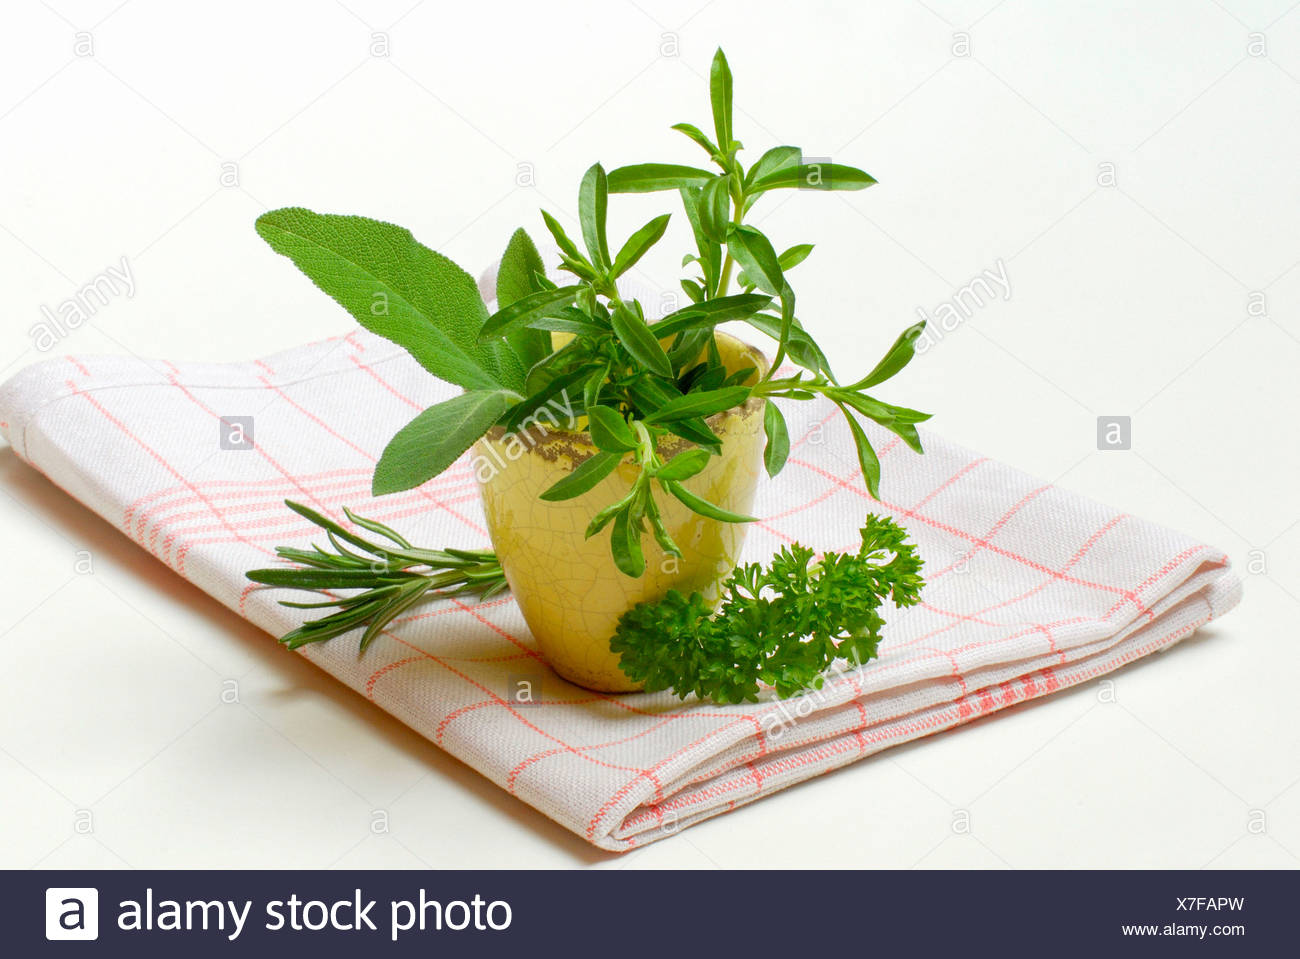 Summer Savory Stock Photo